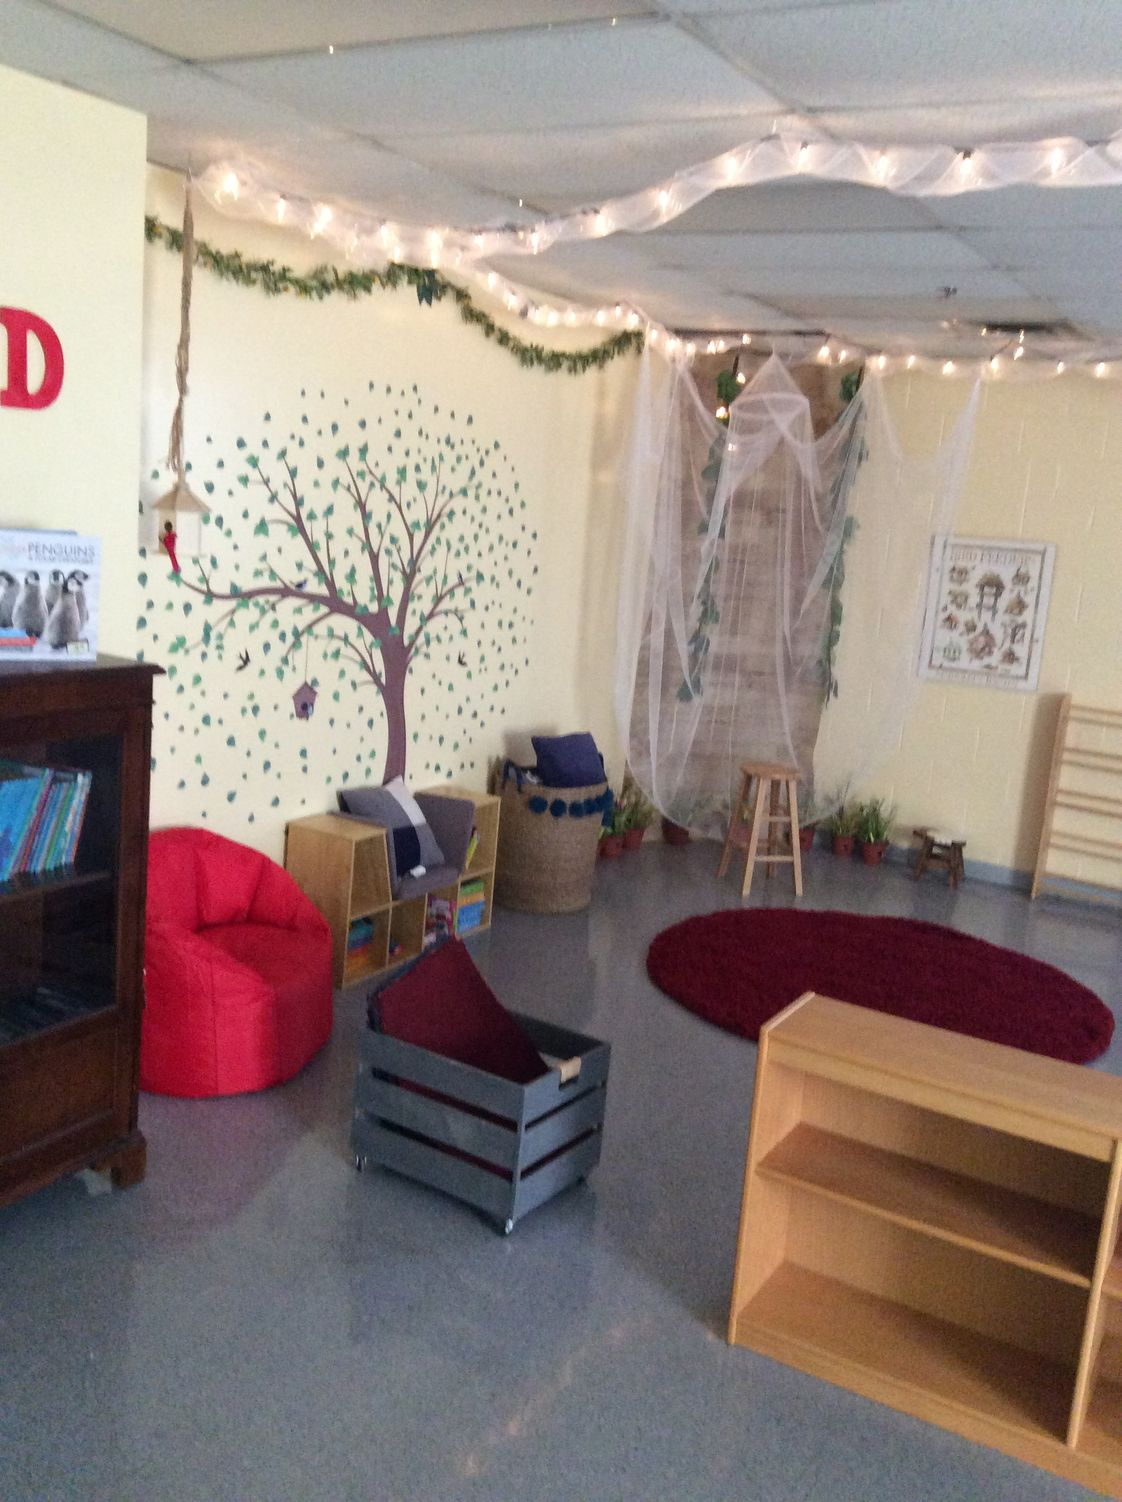 Beacon Christian Academy Photo - Welcome to our Cozy Children's Corner! Your young child will never want to LEAVE this enchanted place!